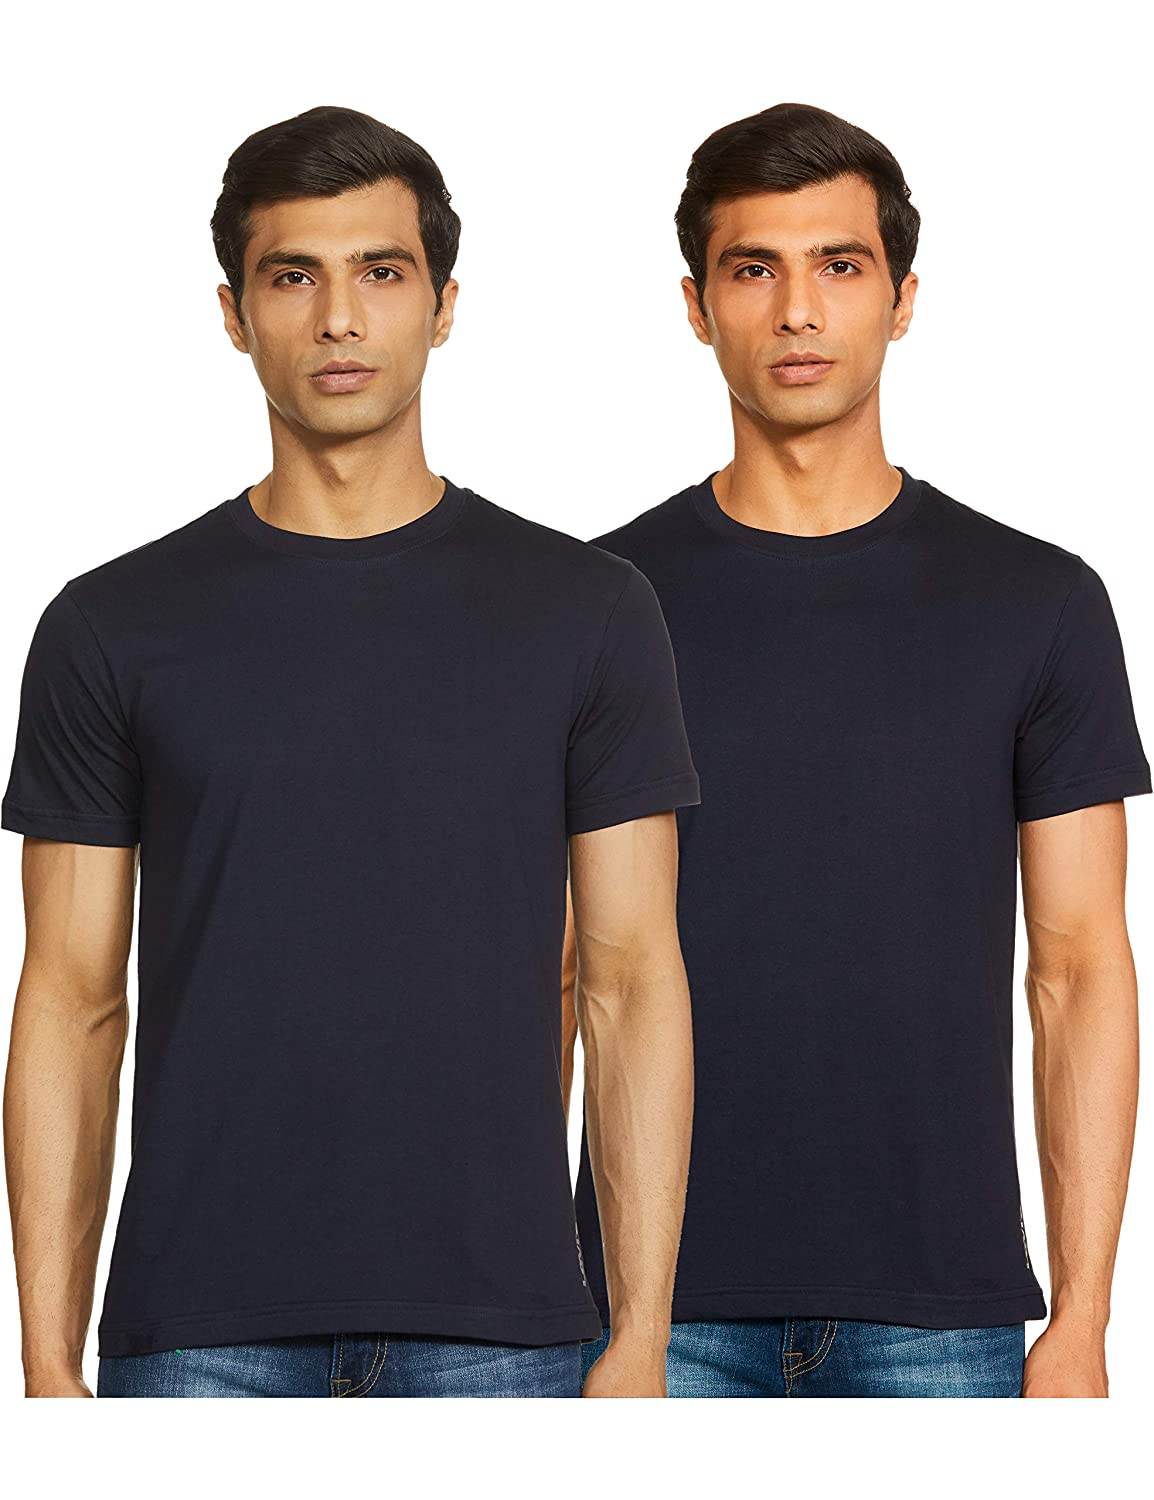 Levi's Men's Ultra-Soft Cotton 300 LS Classic Round Neck T-Shirts (Pack of 2)